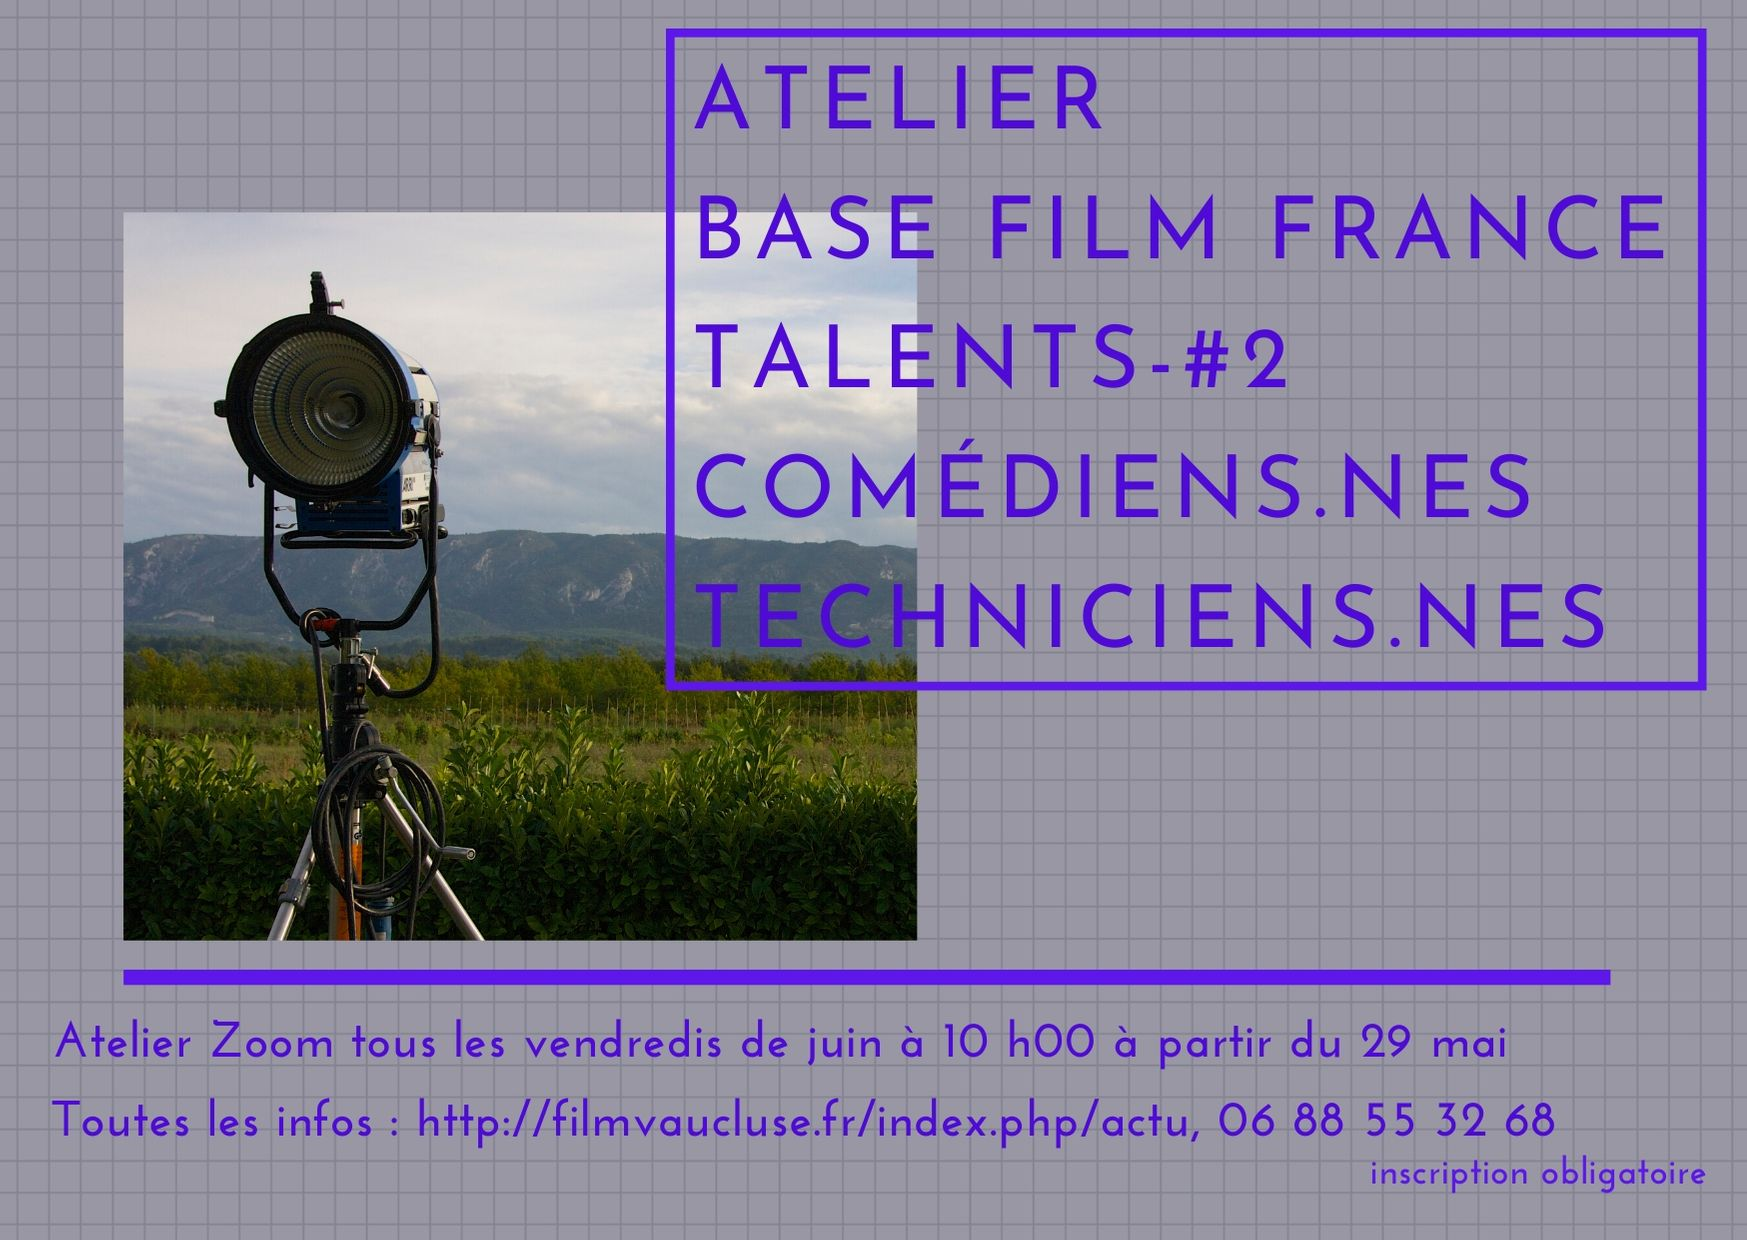 Atelier zoom base Film France Talents -#2 techniciens-nes Comédiens-nes